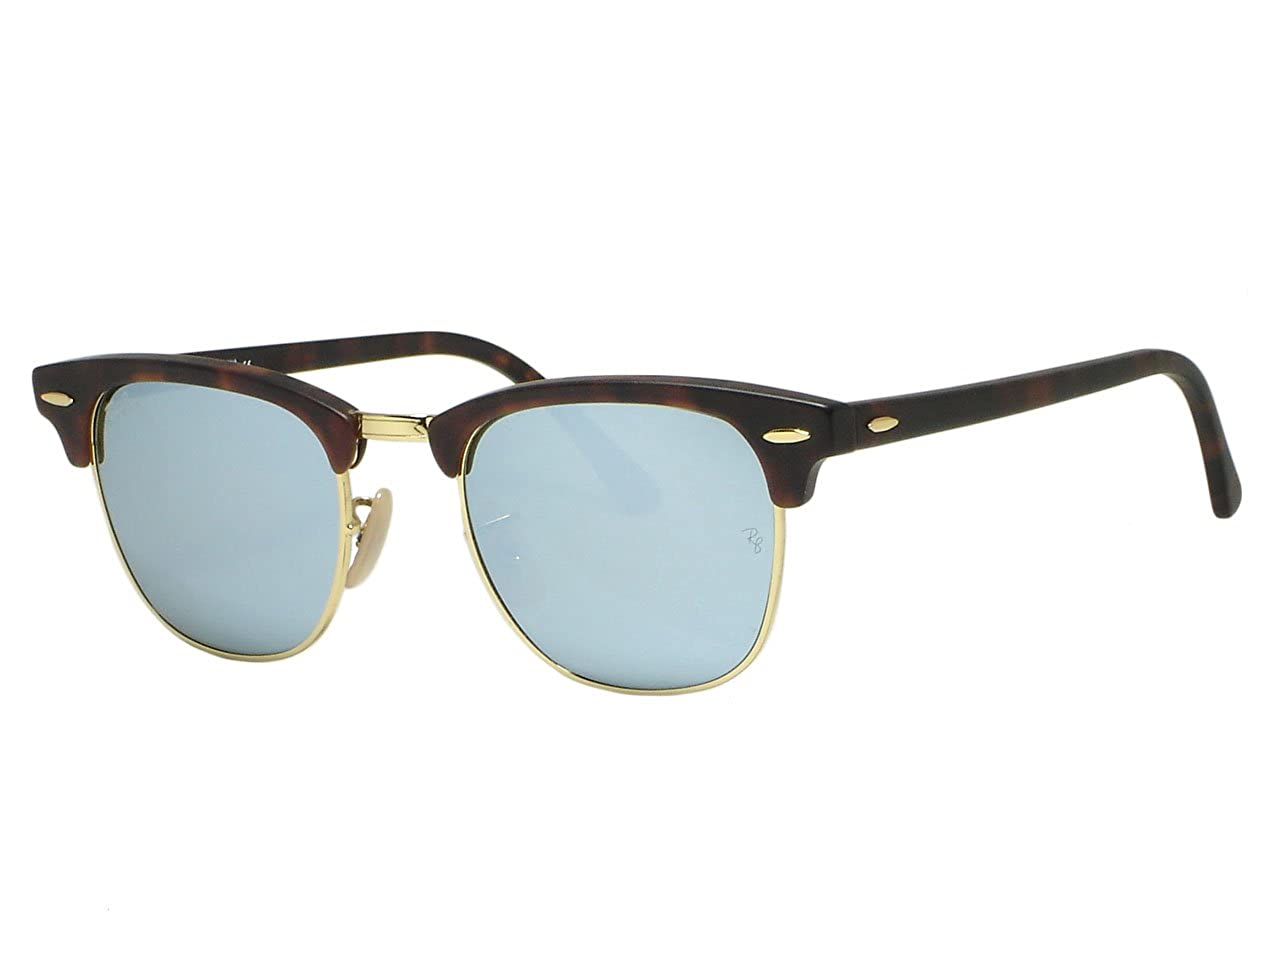 99d90ac48ec Amazon.com  Ray Ban RB3016 Clubmaster 1145 30 Sand Havana Silver Mirror  Sunglasses 51mm  Clothing